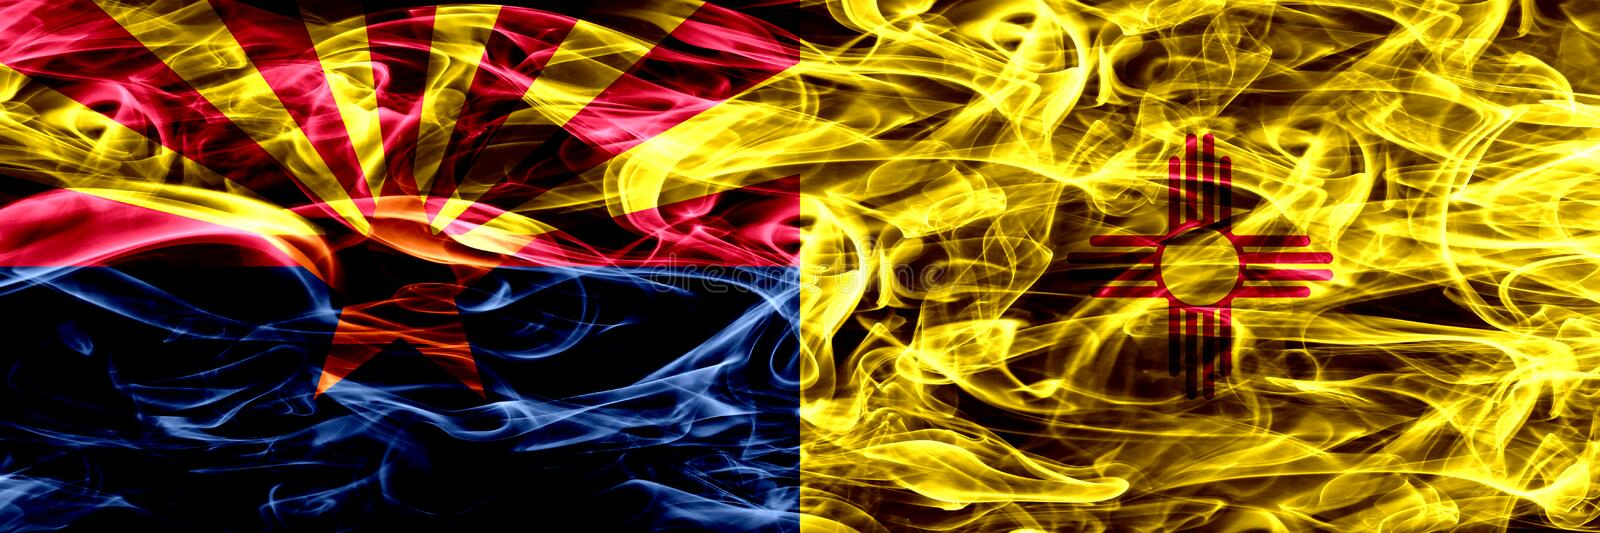 Arizona vs New Mexico colorful concept smoke flags placed side by side.  royalty free stock photos